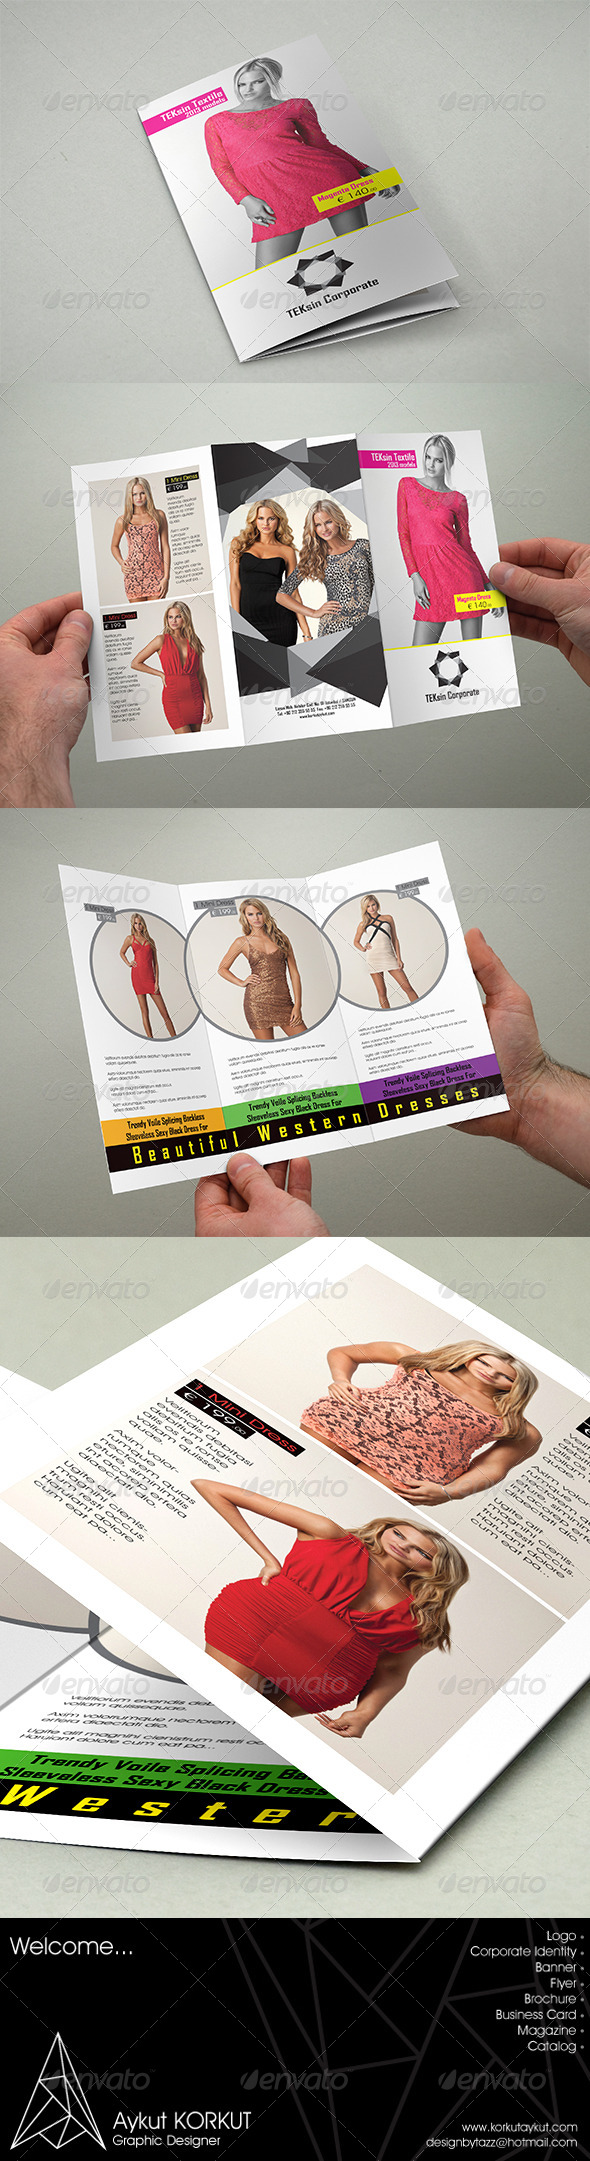 GraphicRiver Teksin Corporate Brochure Template 5889683